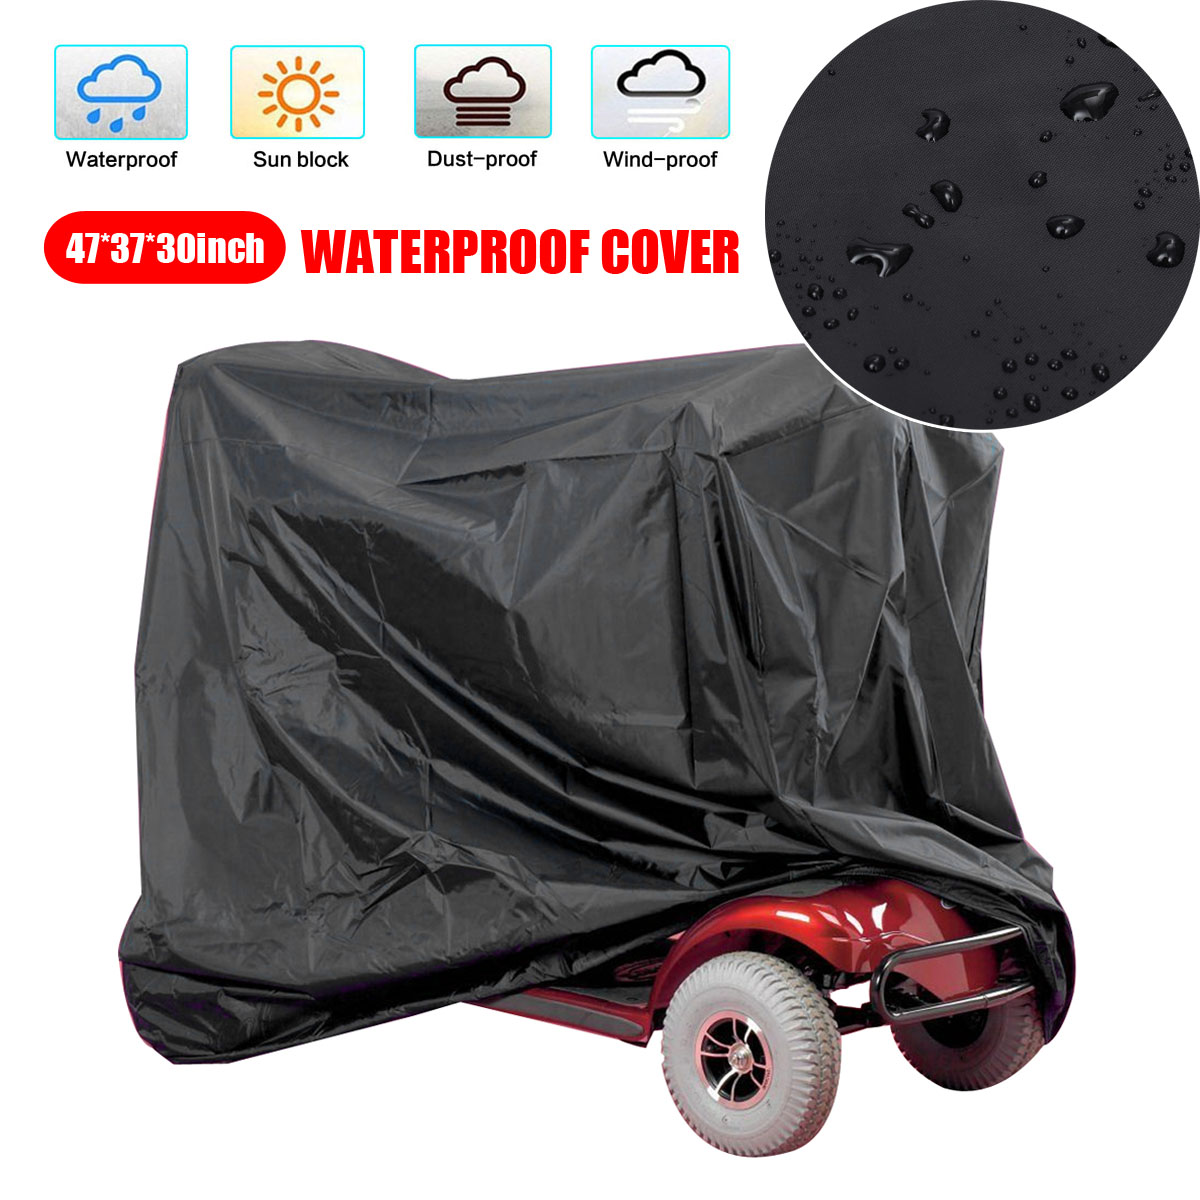 3 Size Black Silver Motorcycle Cover UV/Dust Protector Rain Dustproof Cover For Motorcycle Scooter ATV Lawn Mower Tractor